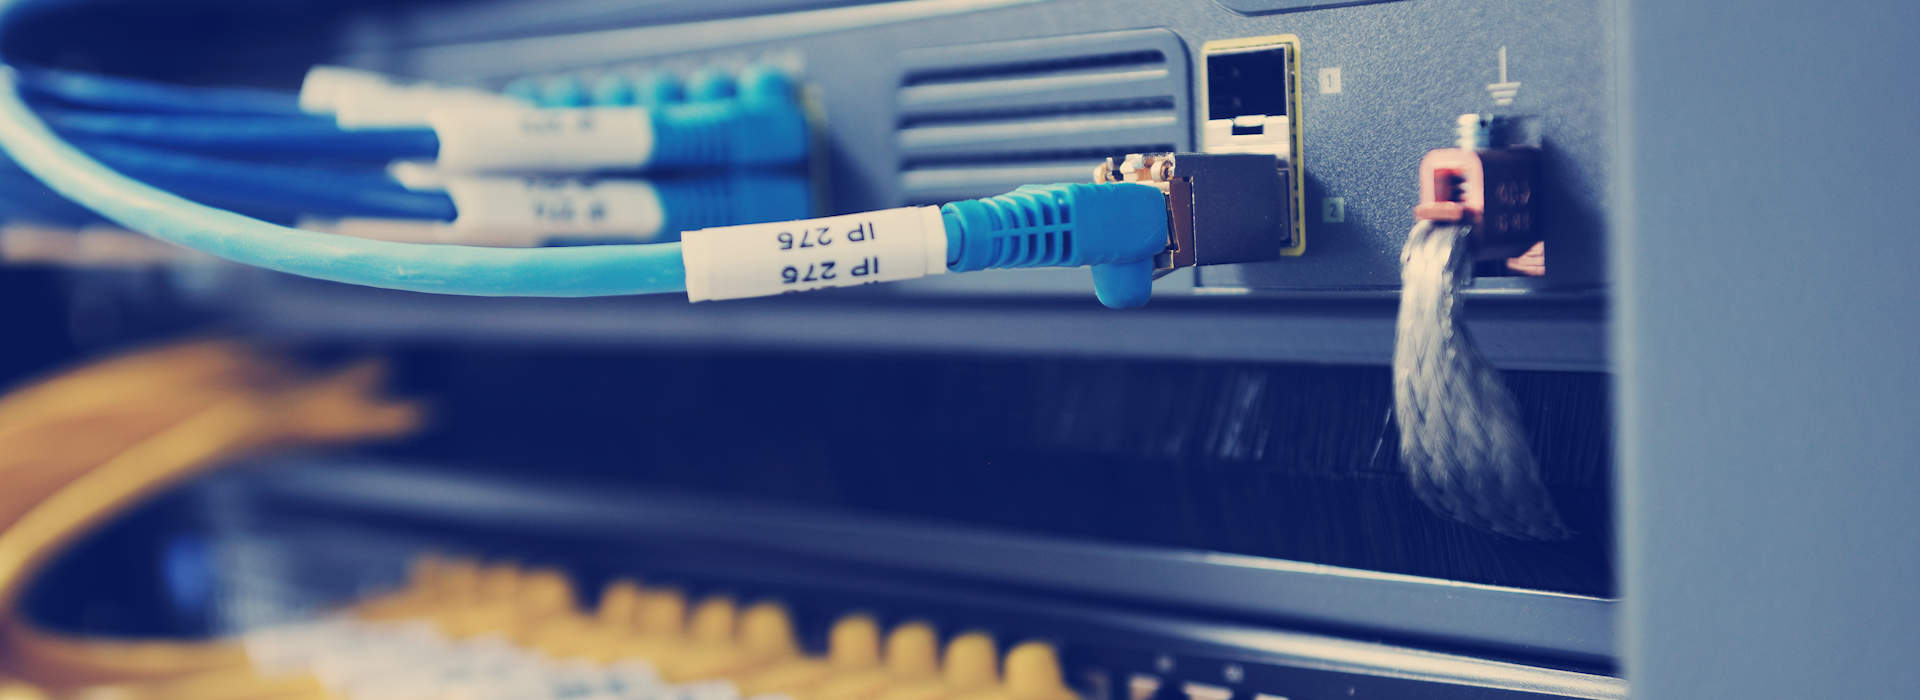 PC Medic can repair or install your business network